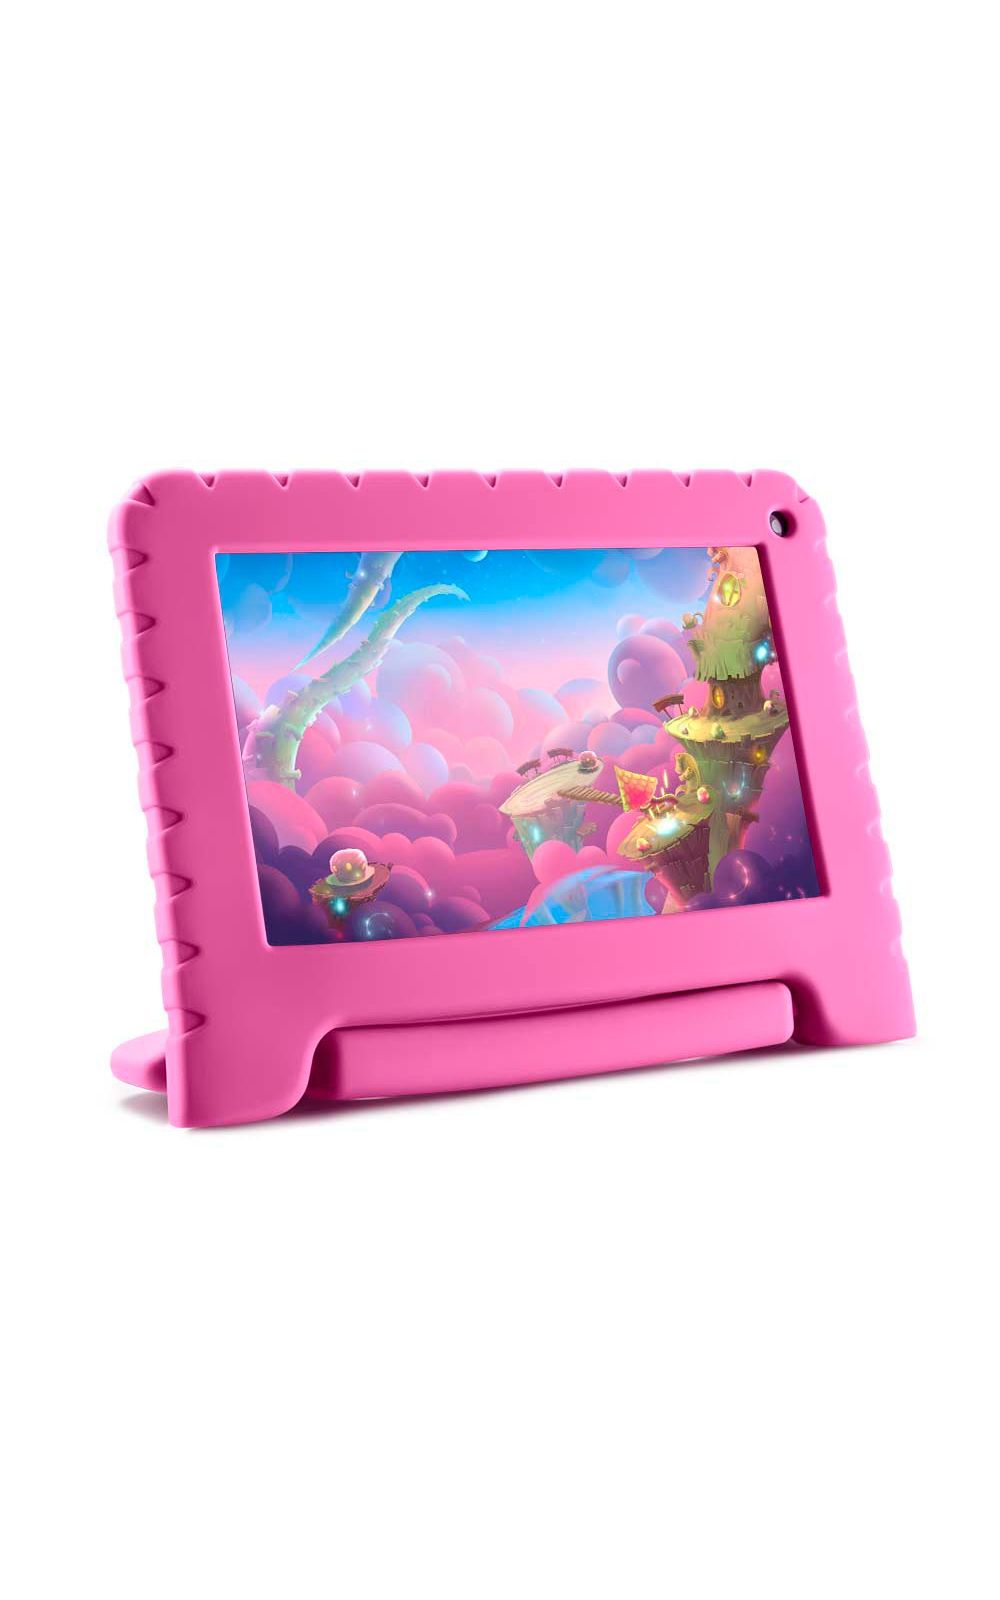 Foto 1 - Tablet Kid Pad Lite Multilaser 7 Pol. 16GB Quad Core Android 8.1 Rosa - NB303